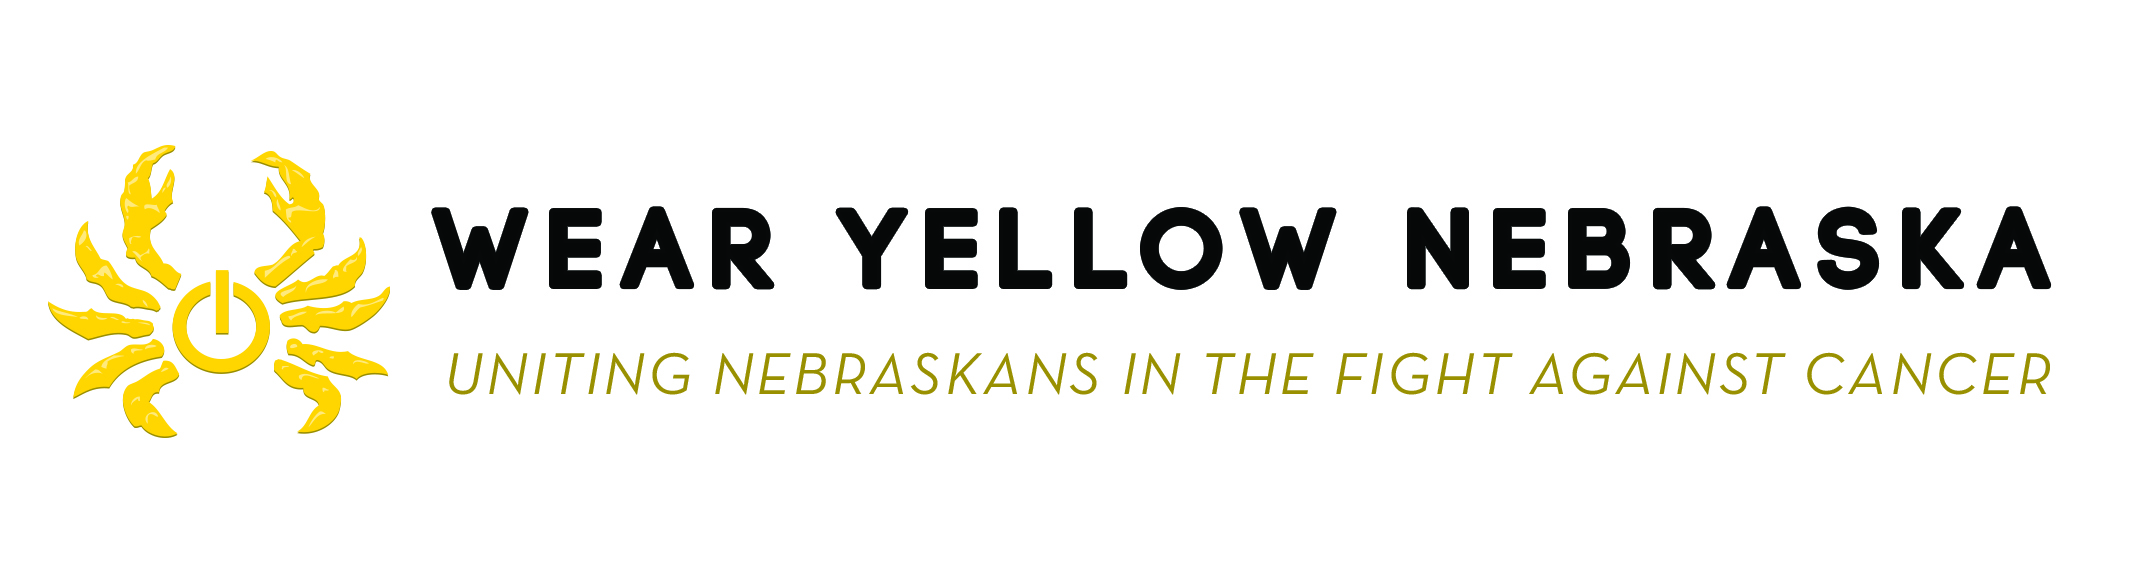 wear yellow nebraska - Wear Yellow Nebraska's mission is to provide service, support and community for Nebraska's cancer survivors. Our purpose from the very beginning was to bring people passionate about cycling together to celebrate life and fight cancer.